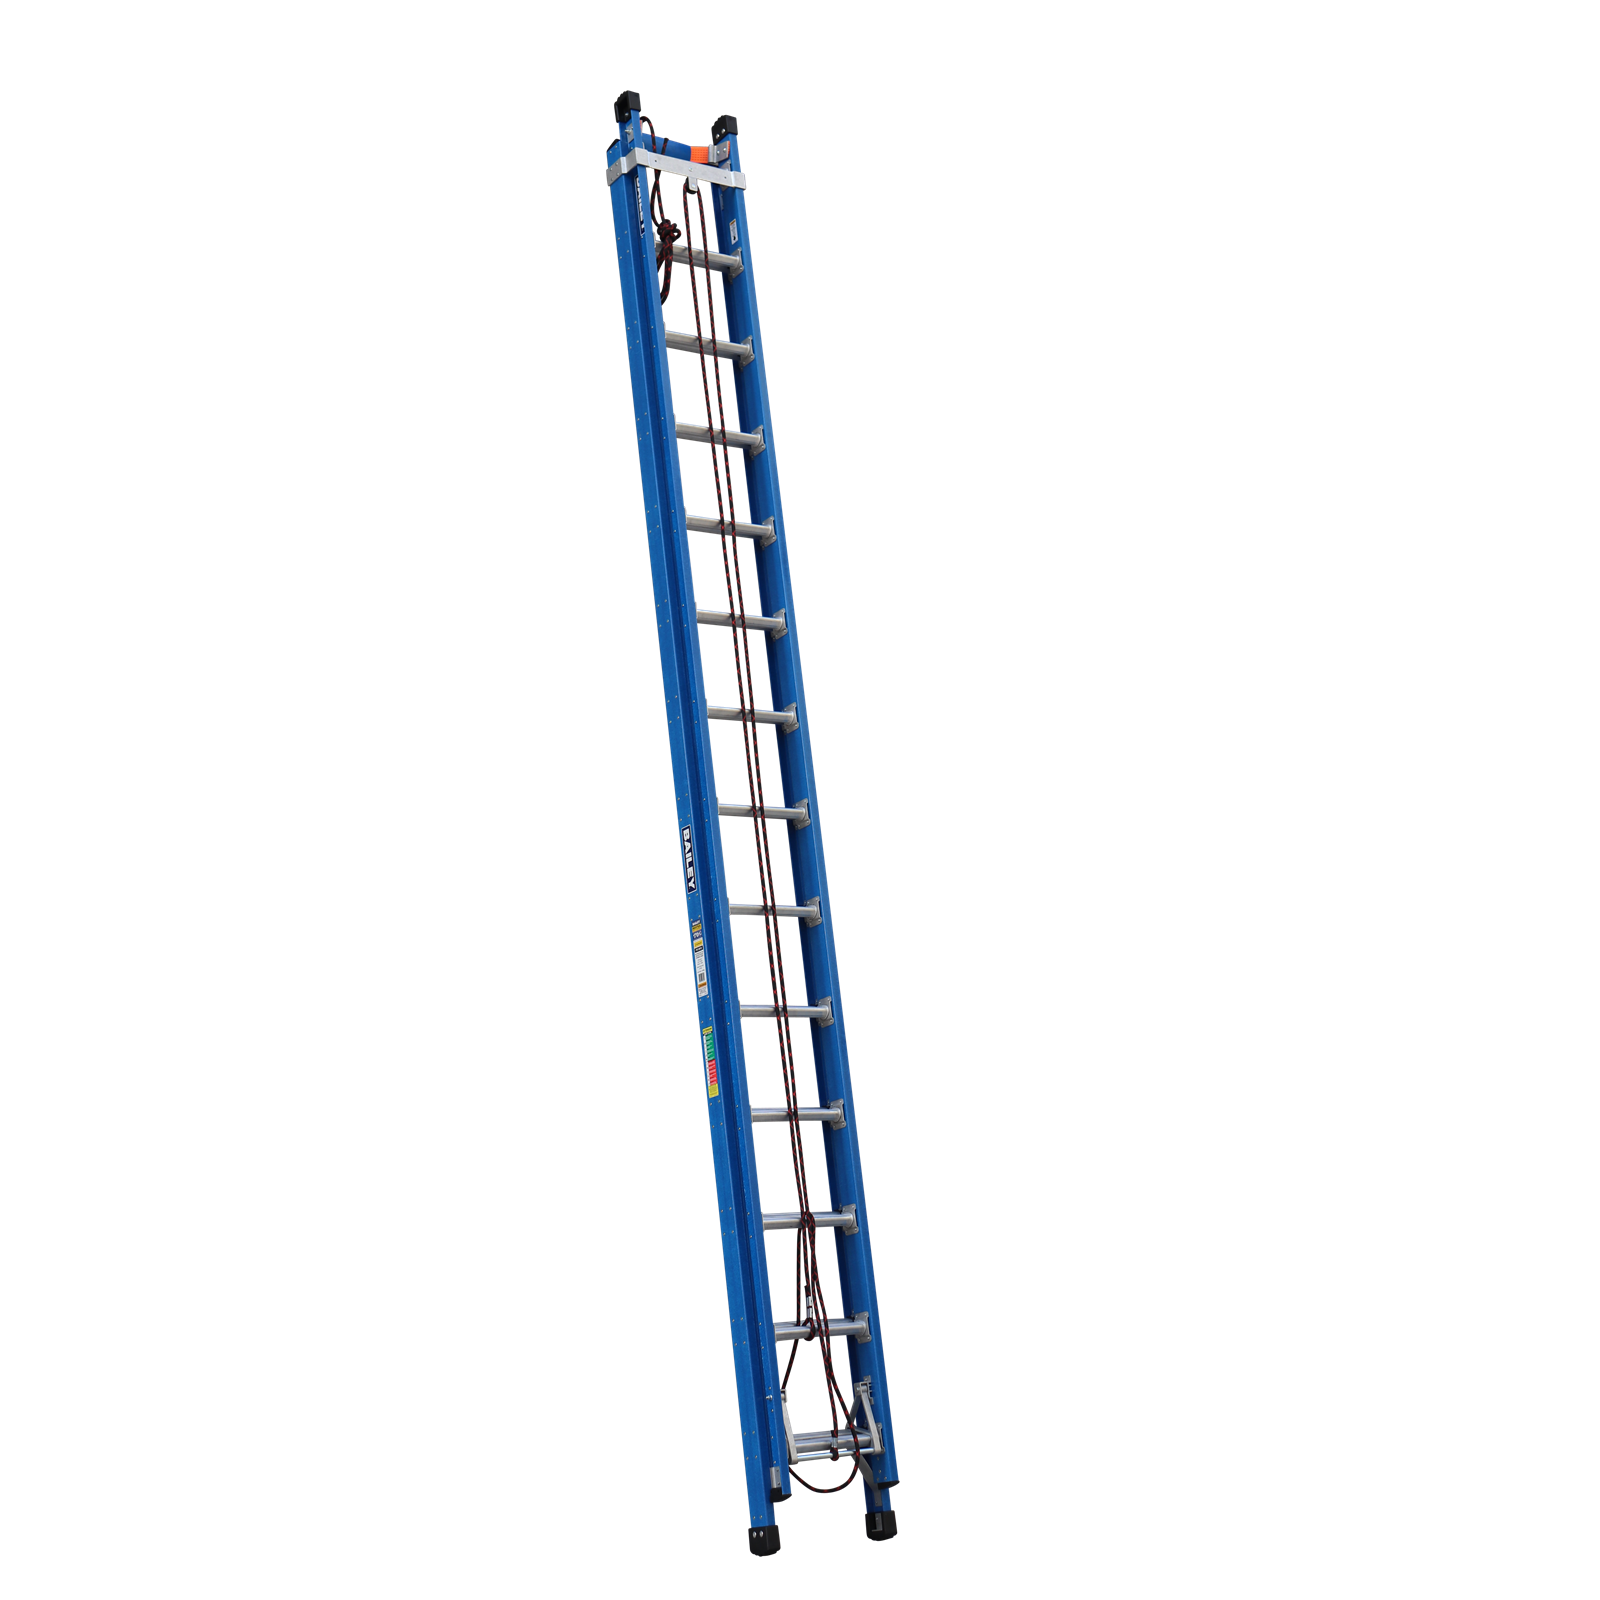 Bailey 4.4-7.7m 170kg Industrial Rated Pro 14 Rung Fibreglass Extension Ladder